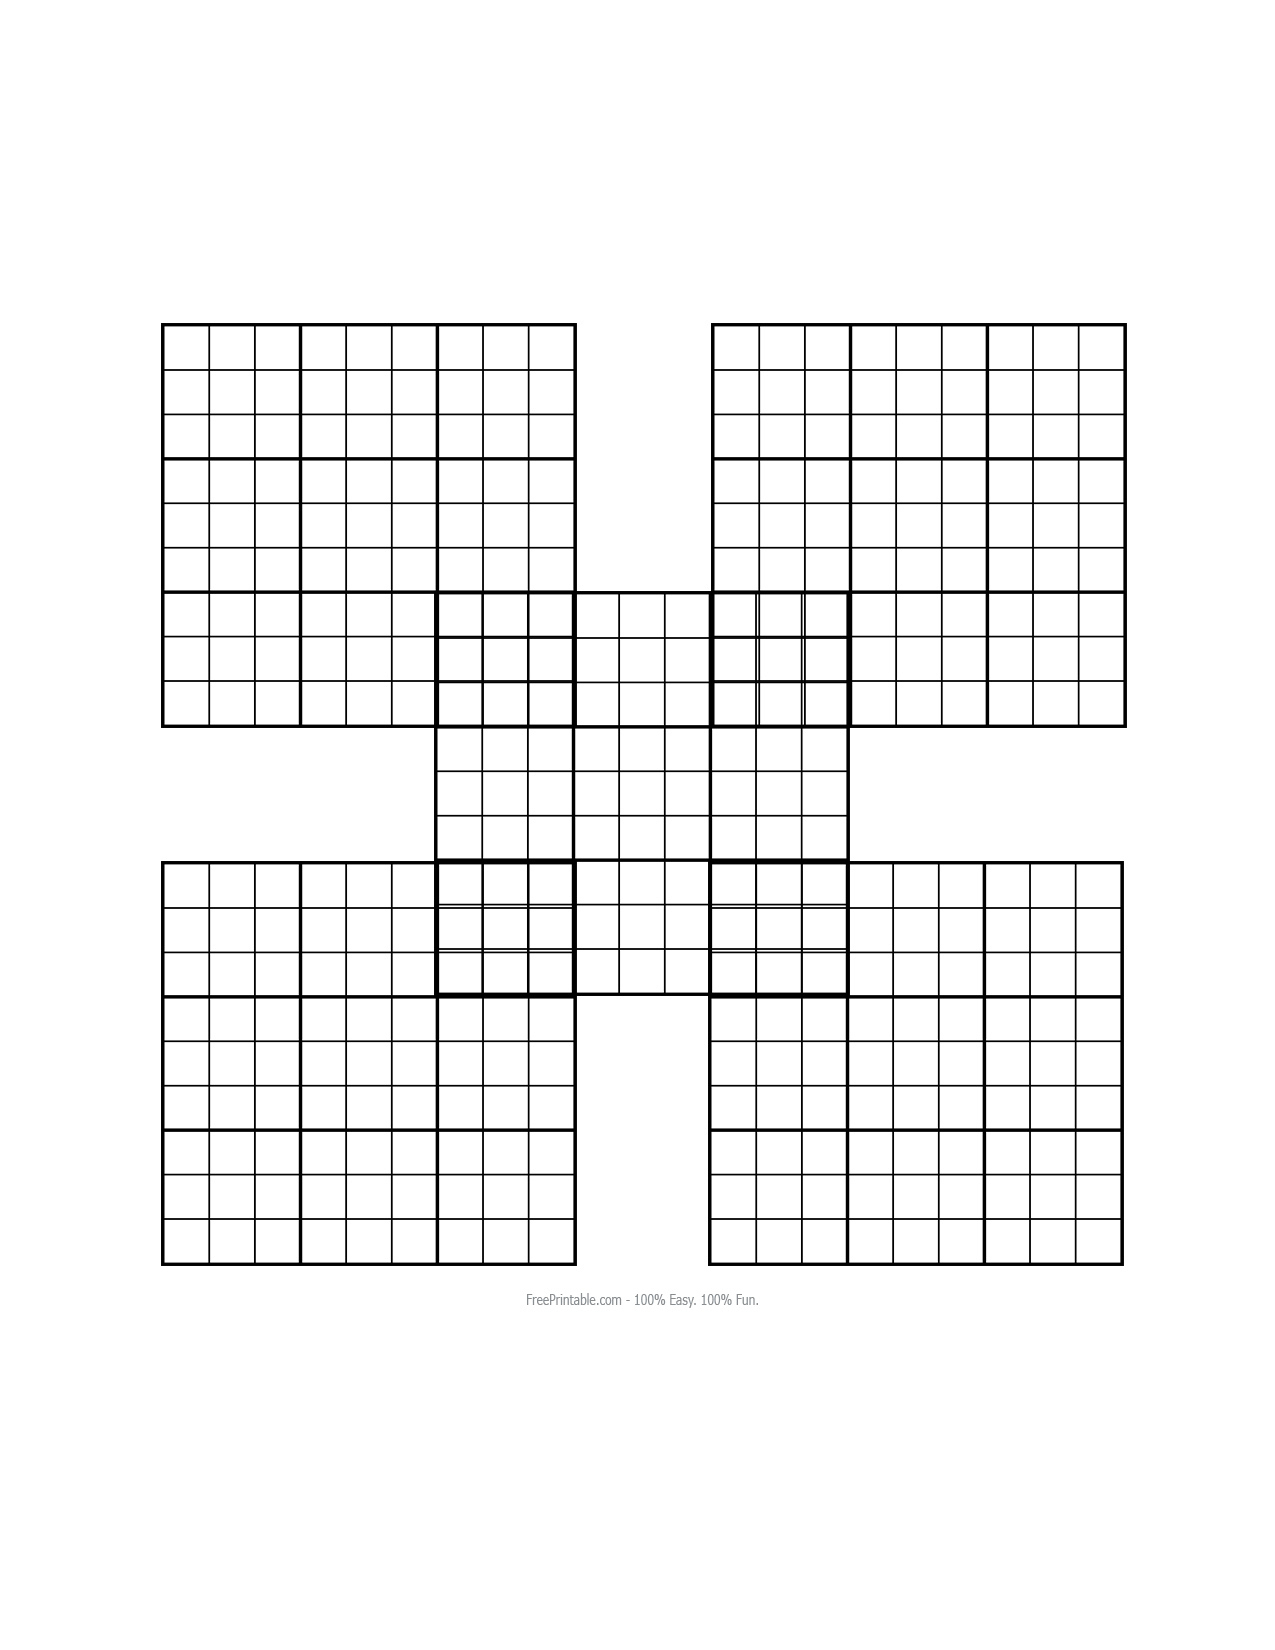 Lovely Blank Sudoku Worksheet | Educational Worksheet